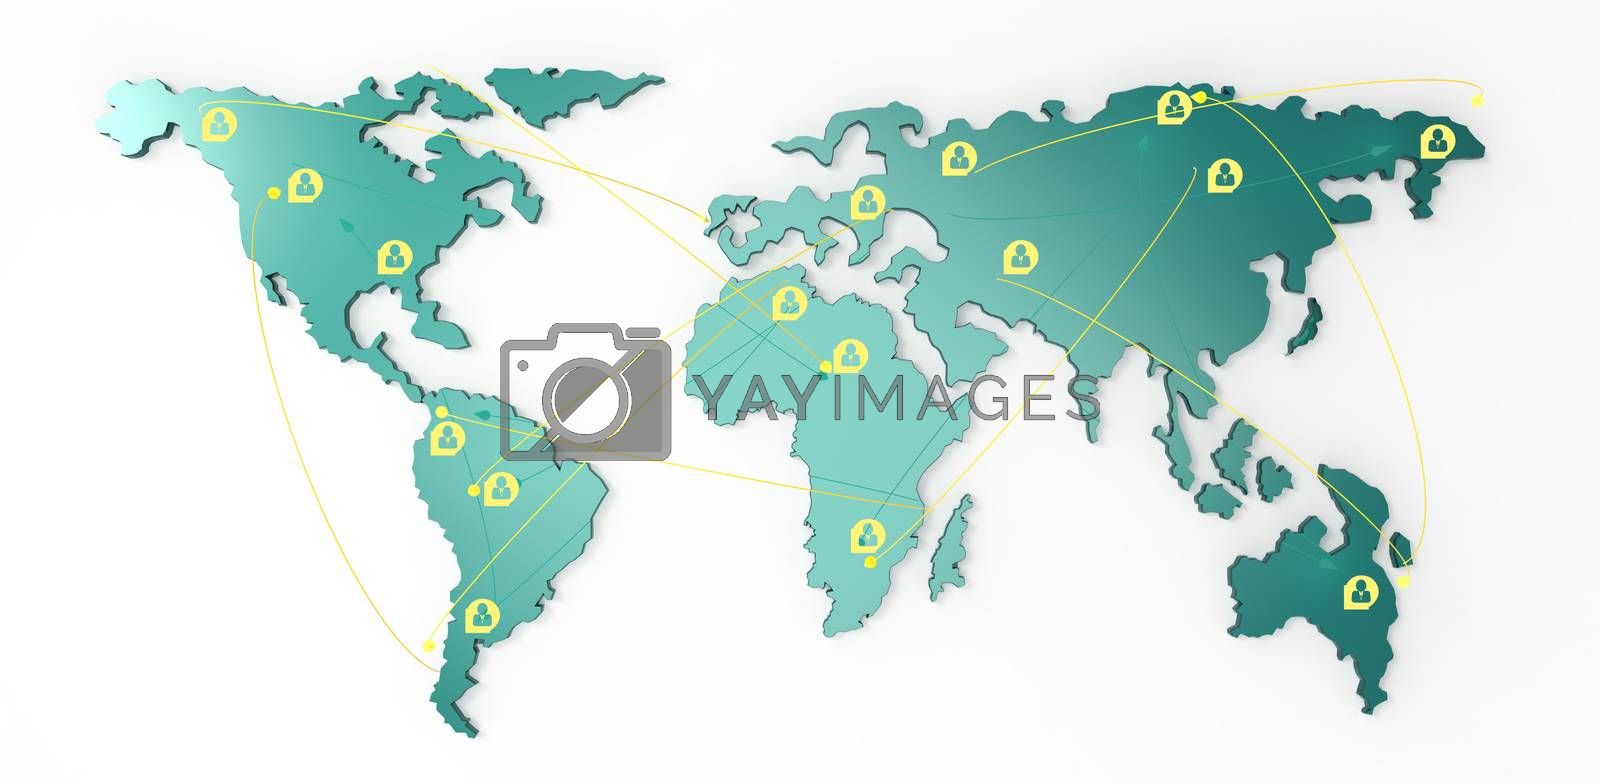 Royalty free image of social network human 3d on world map  by everythingpossible